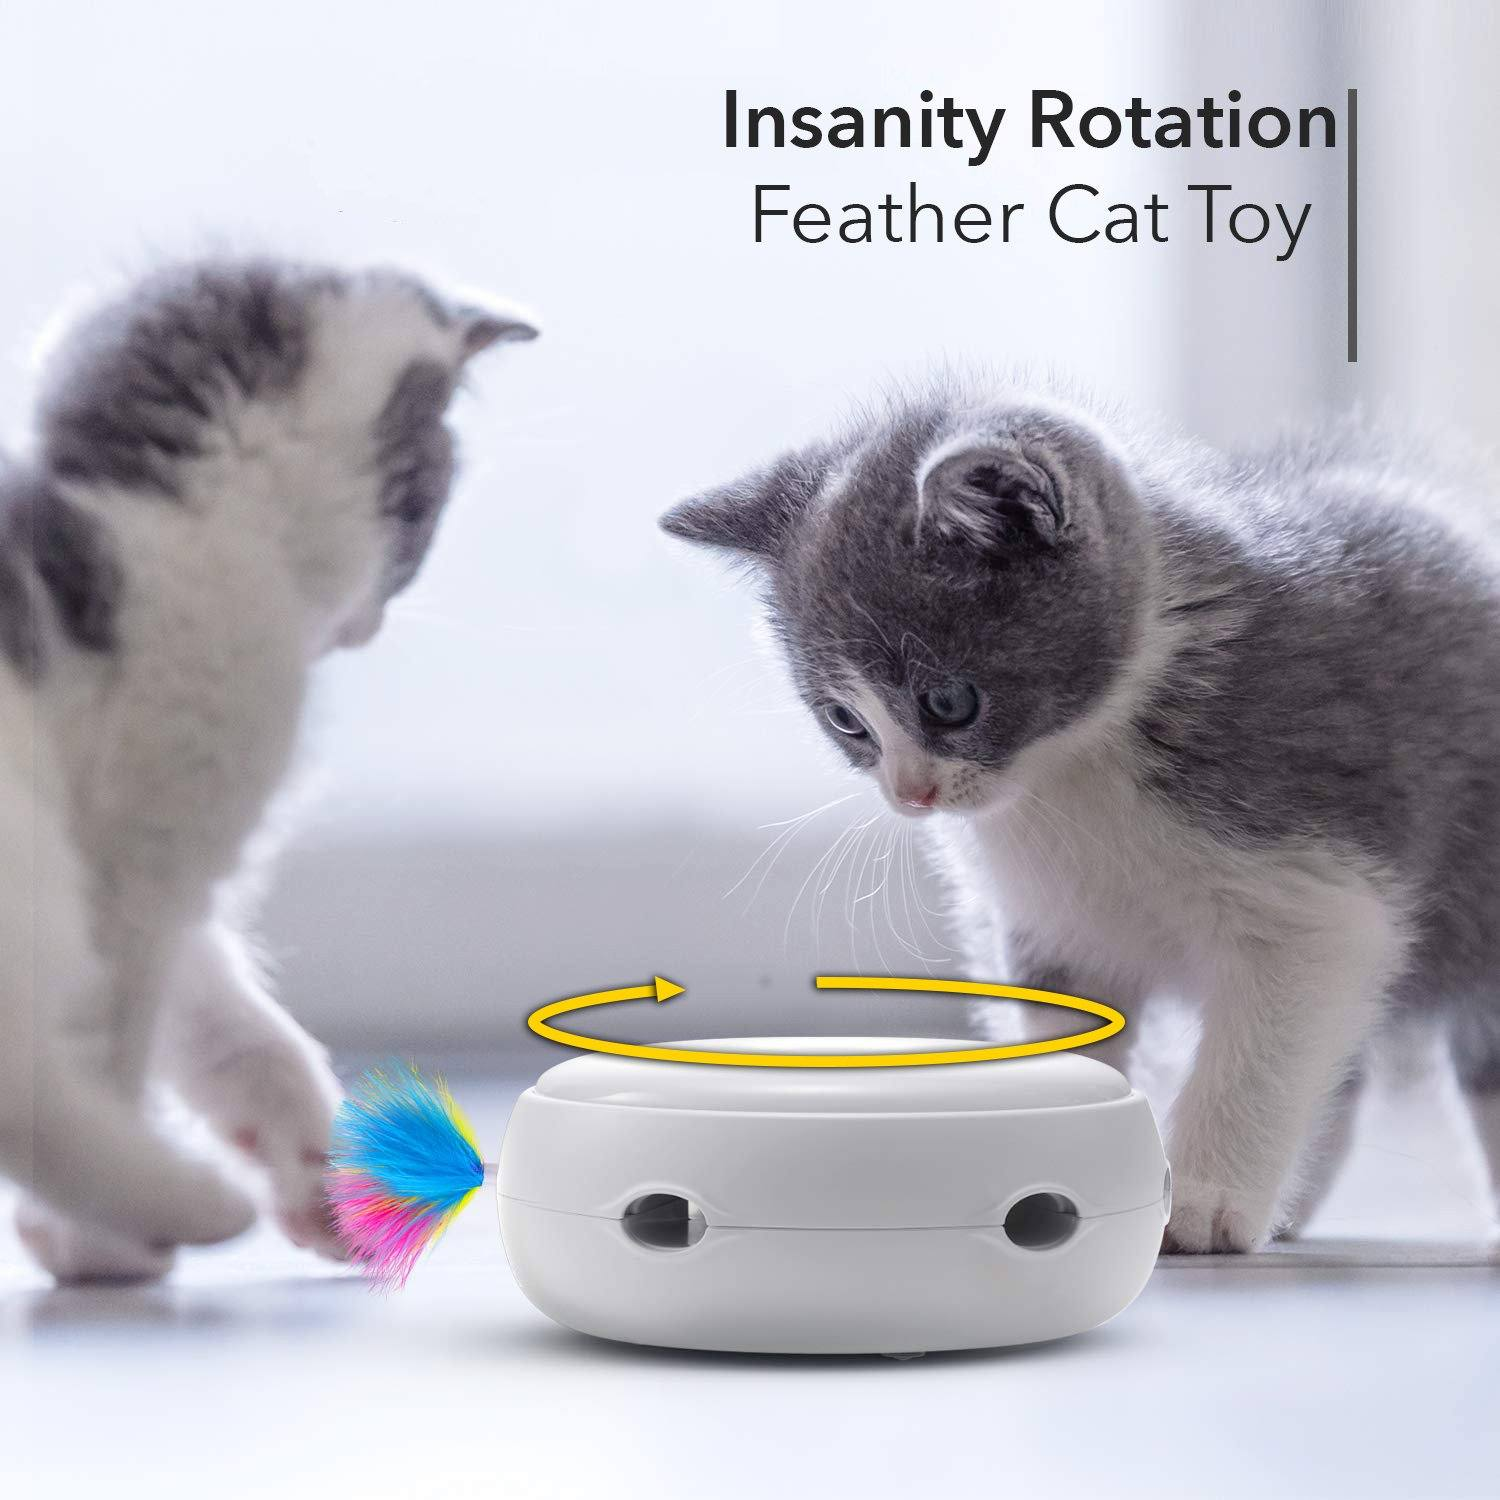 Insanity Rotation Feather Cat Toy